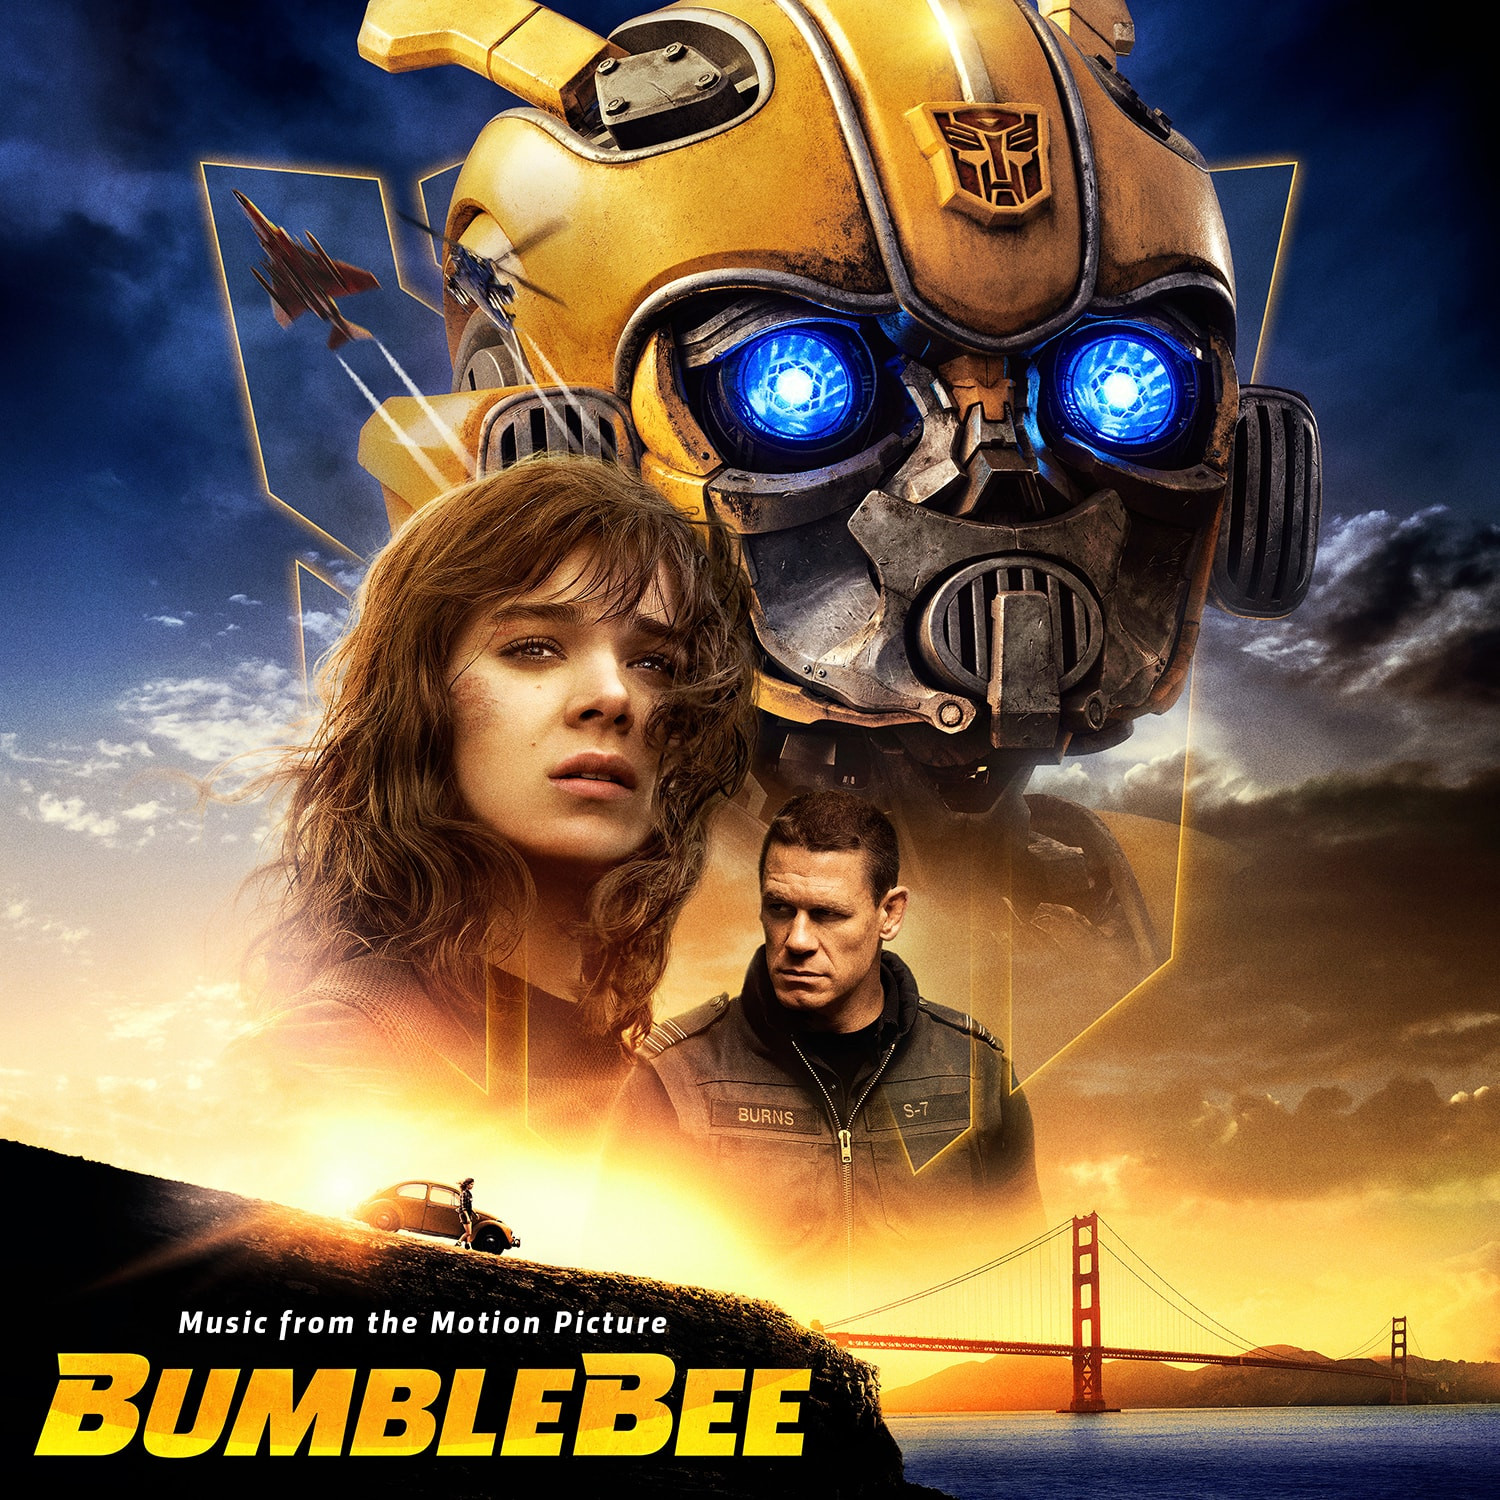 bumblebee-soundtrack-miusic-min.jpg